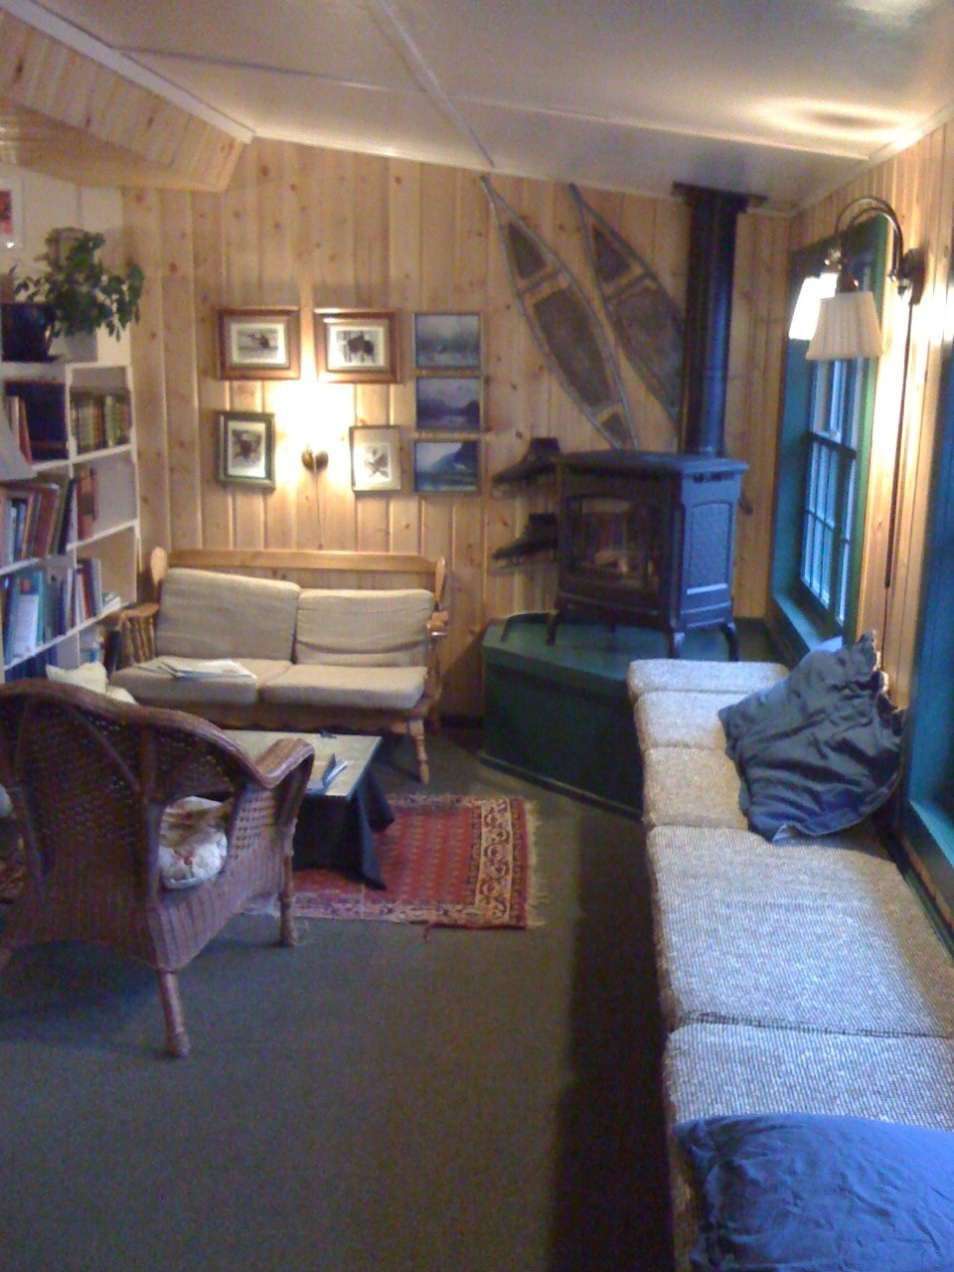 Talkeetna Roadhouse common area, photo 3.